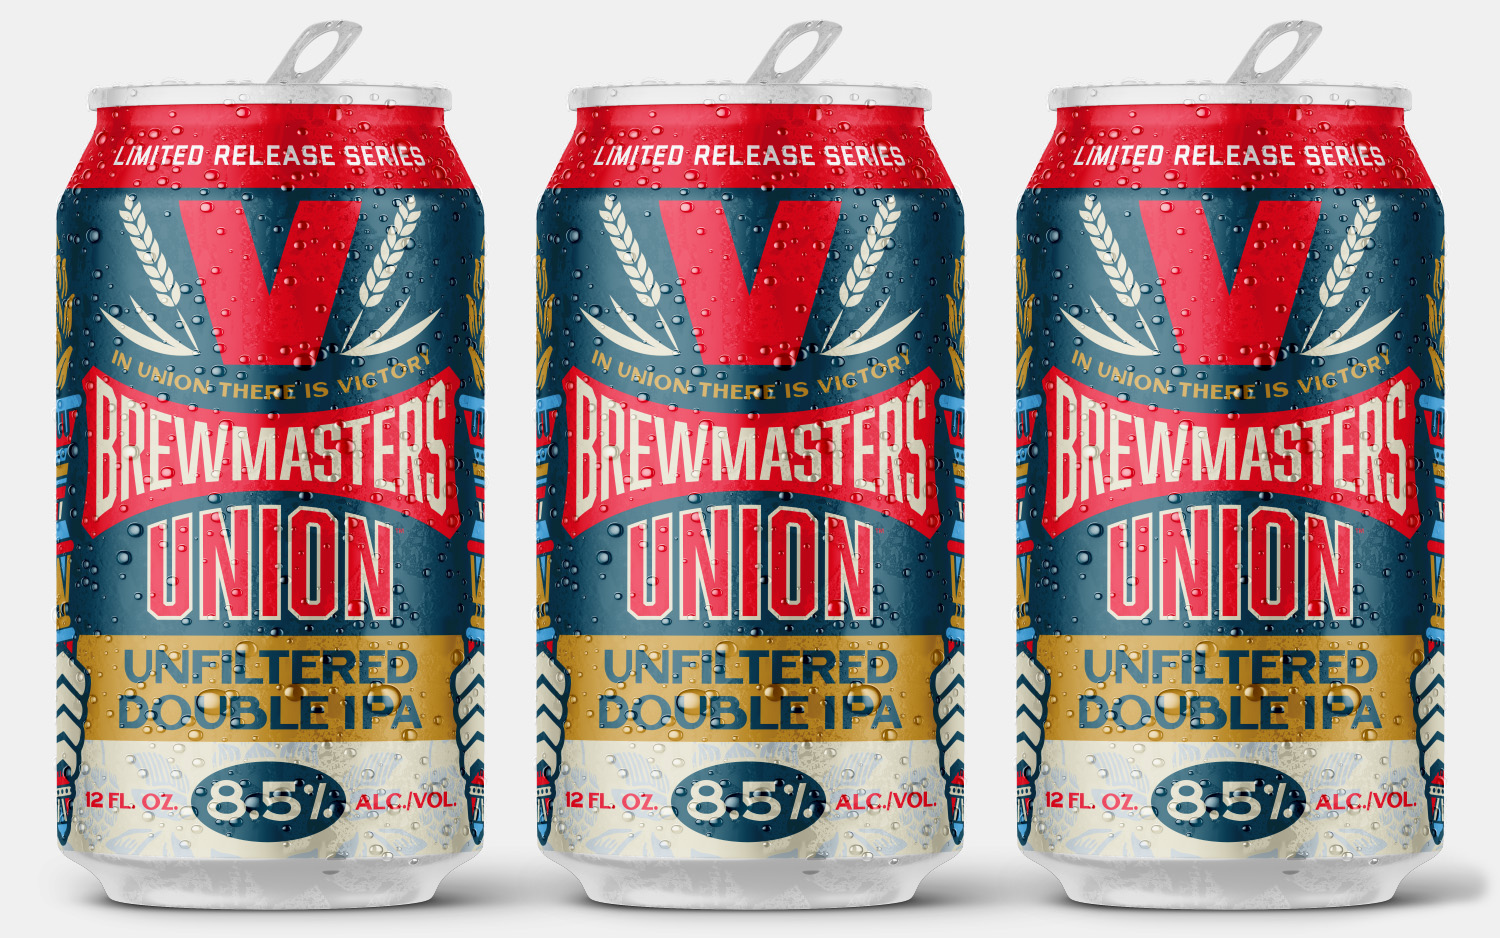 Victory Brewmasters Union Unfiltered Double IPA